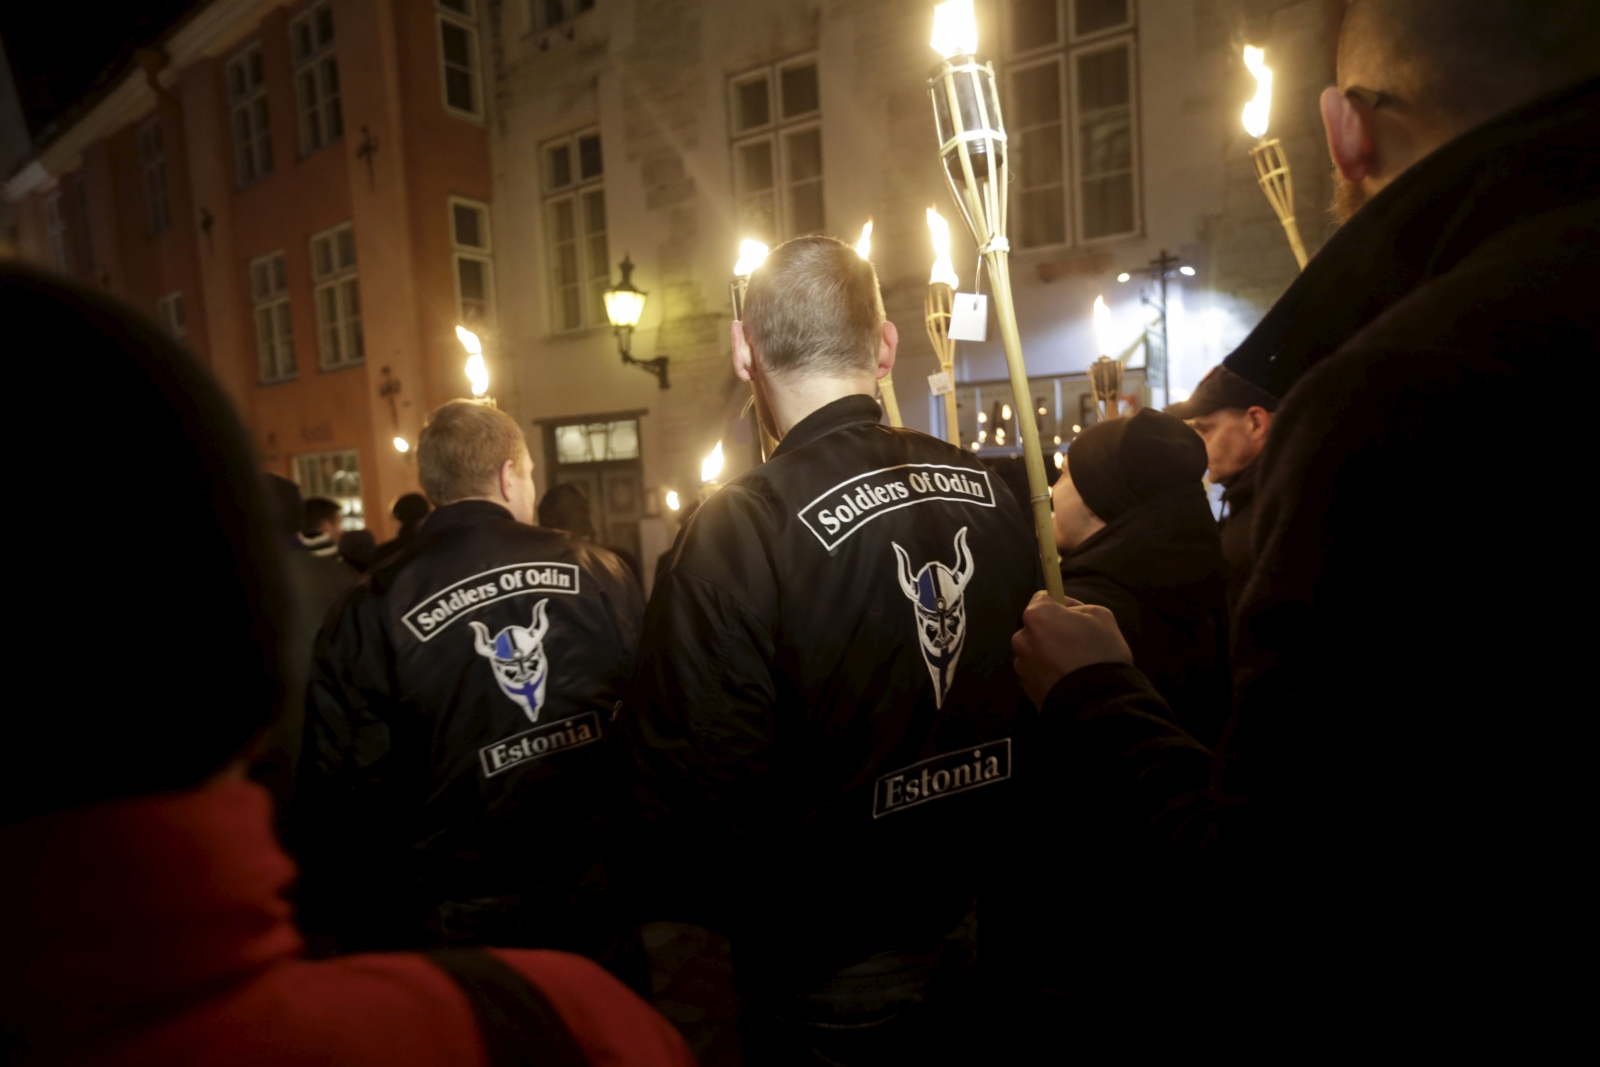 Members of the Soldiers of Odin march